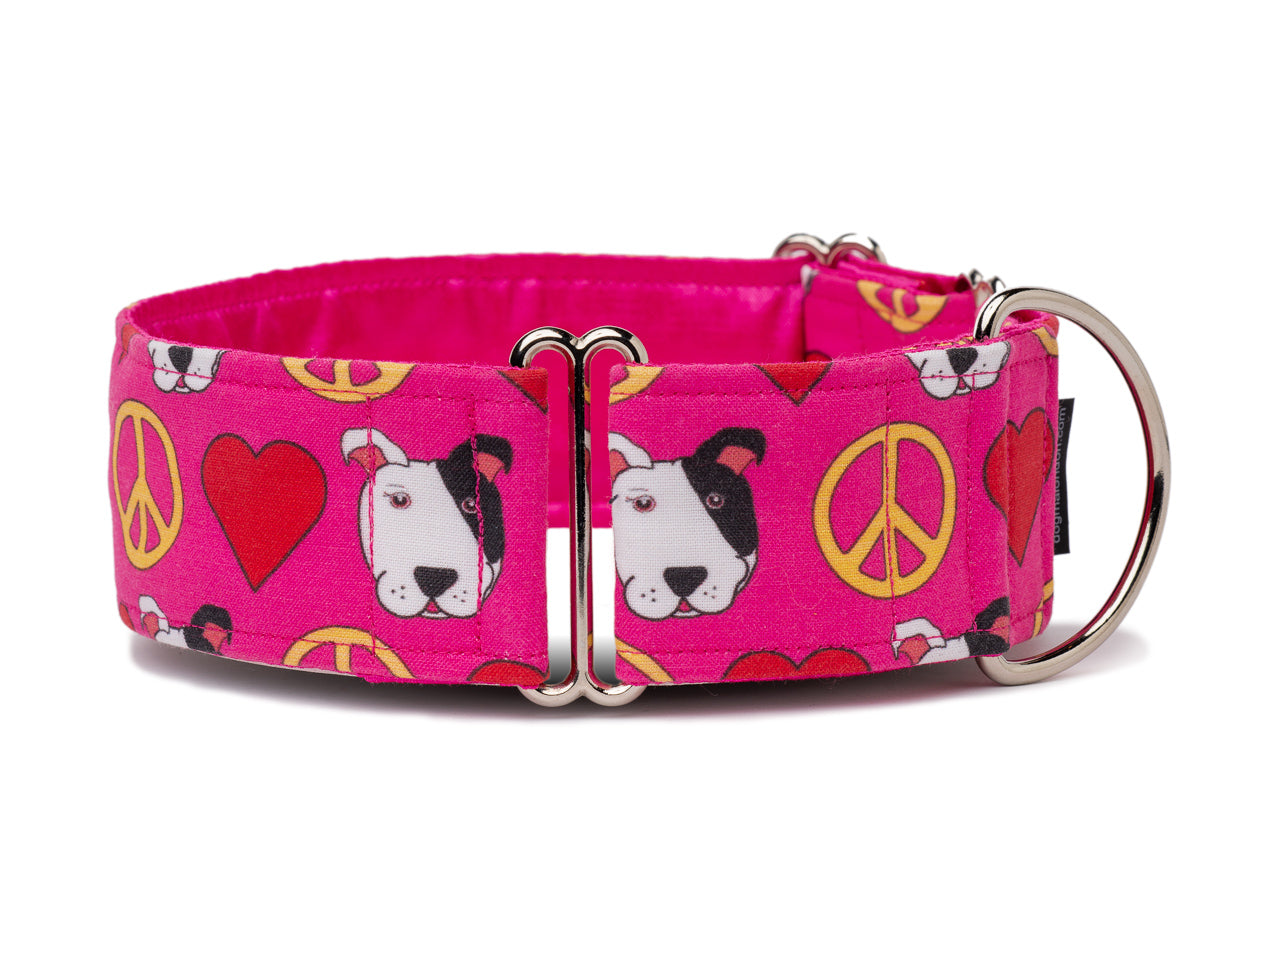 Your pooch can spread joy wherever he or she goes in this happy pink collar with peace symbols, hearts, and cute puppy faces!